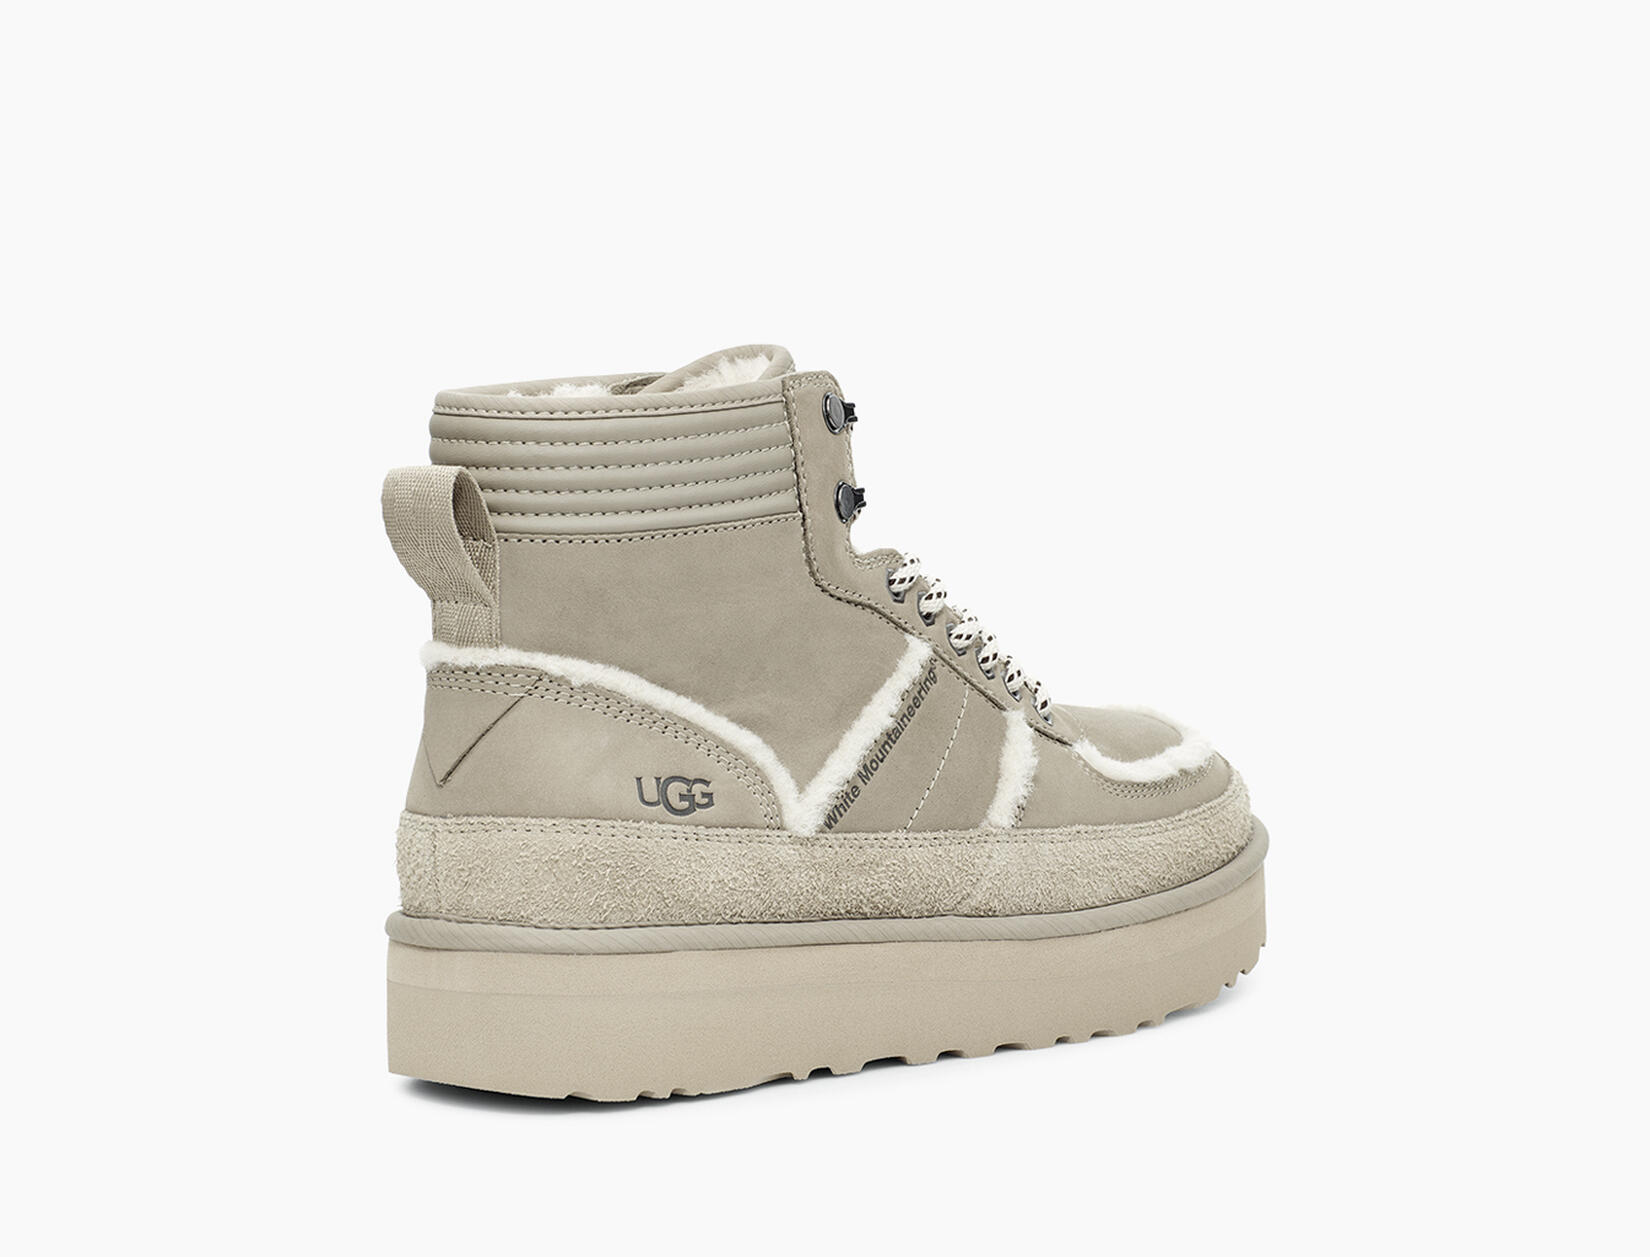 White Mountaineering Mid Boot